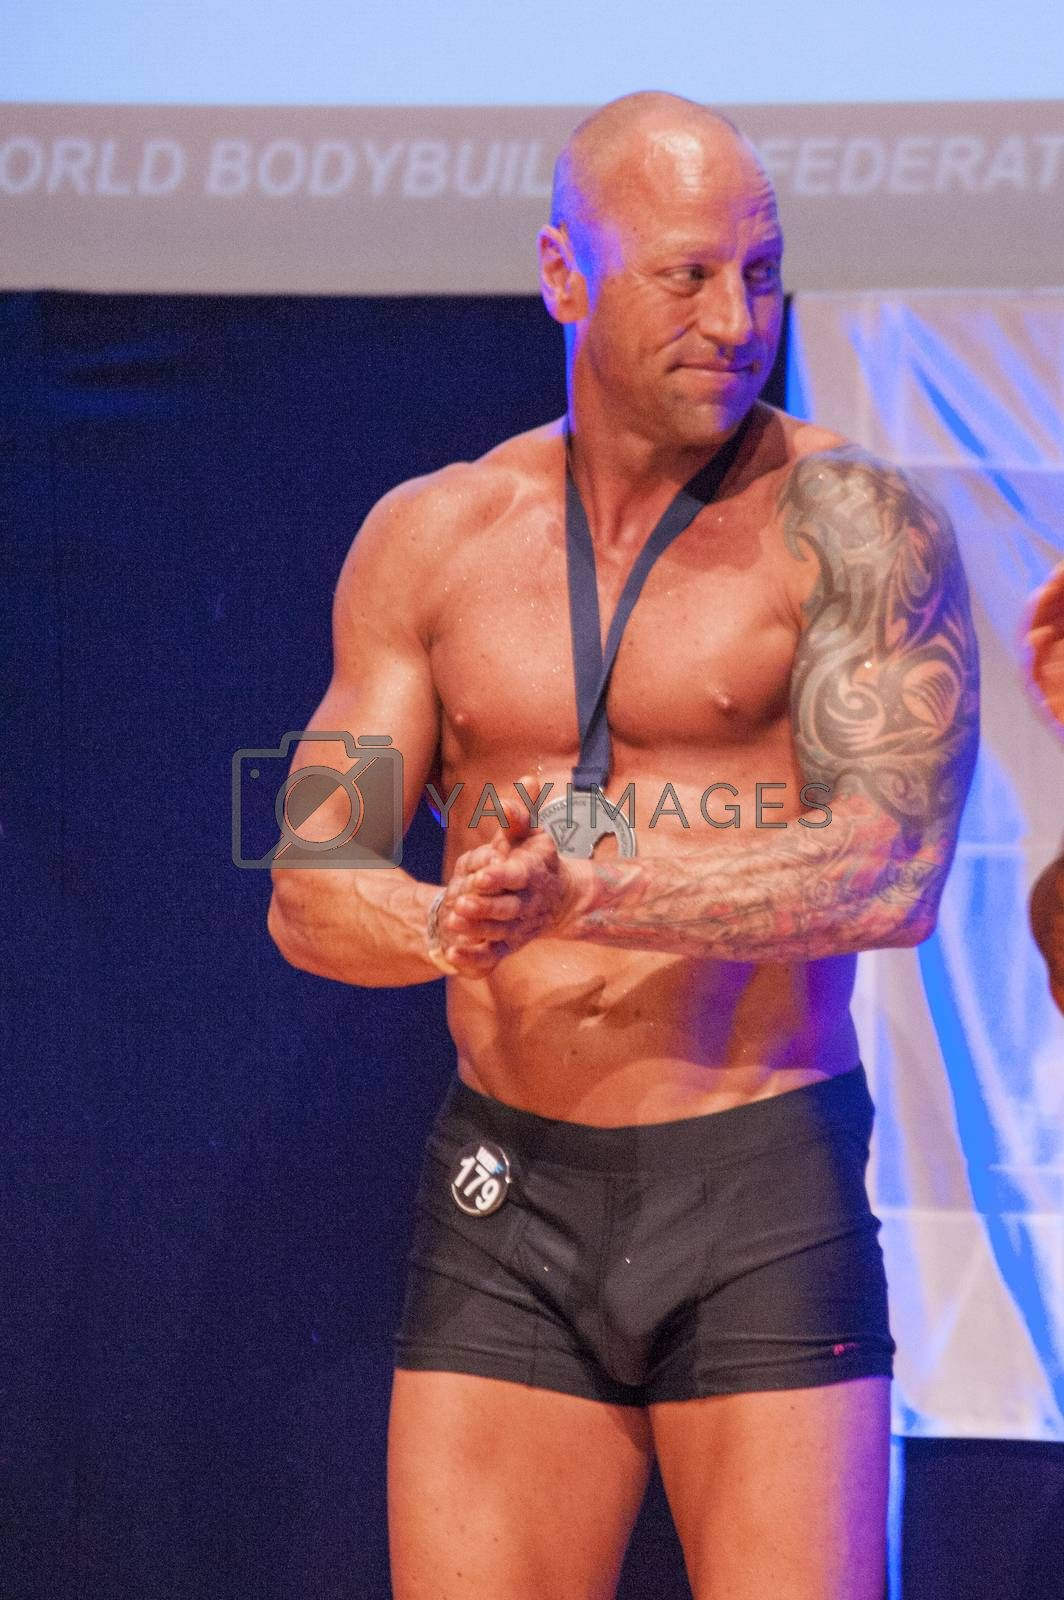 MAASTRICHT, THE NETHERLANDS - OCTOBER 25, 2015: Male physique model Erik Stobbe celebrates his victory on stage at the World Grandprix Bodybuilding and Fitness of the WBBF-WFF on October 25, 2015 at the MECC Theatre in Maastricht, the Netherlands.